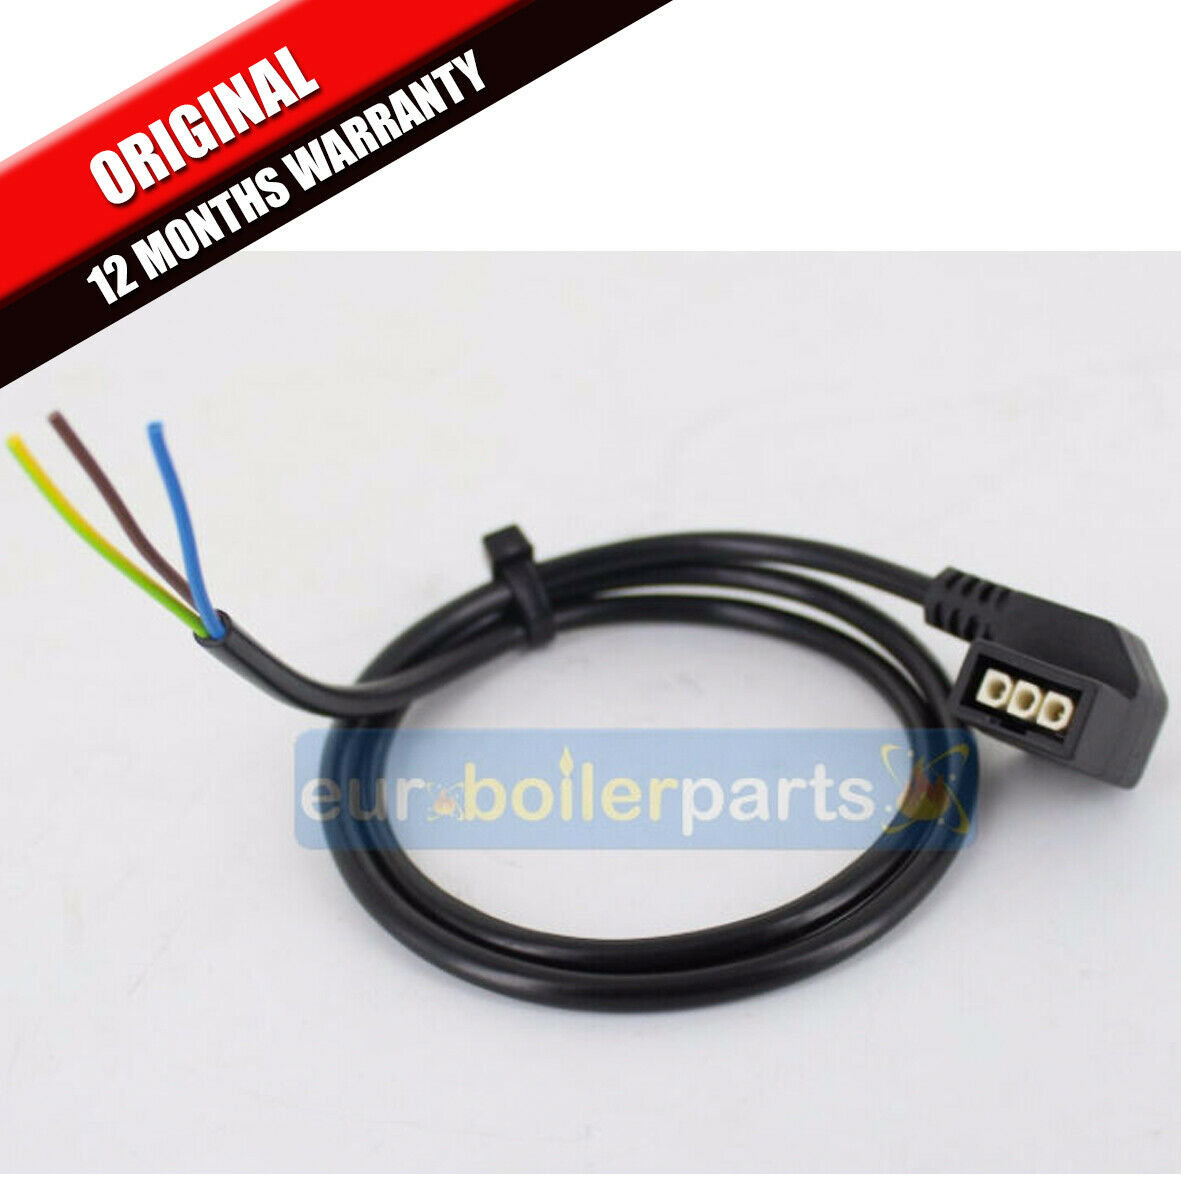 GLOWWORM ULTRACOM 24CXI 30Cxi 38Cxi Pump Connection Cable 0020014171 ...